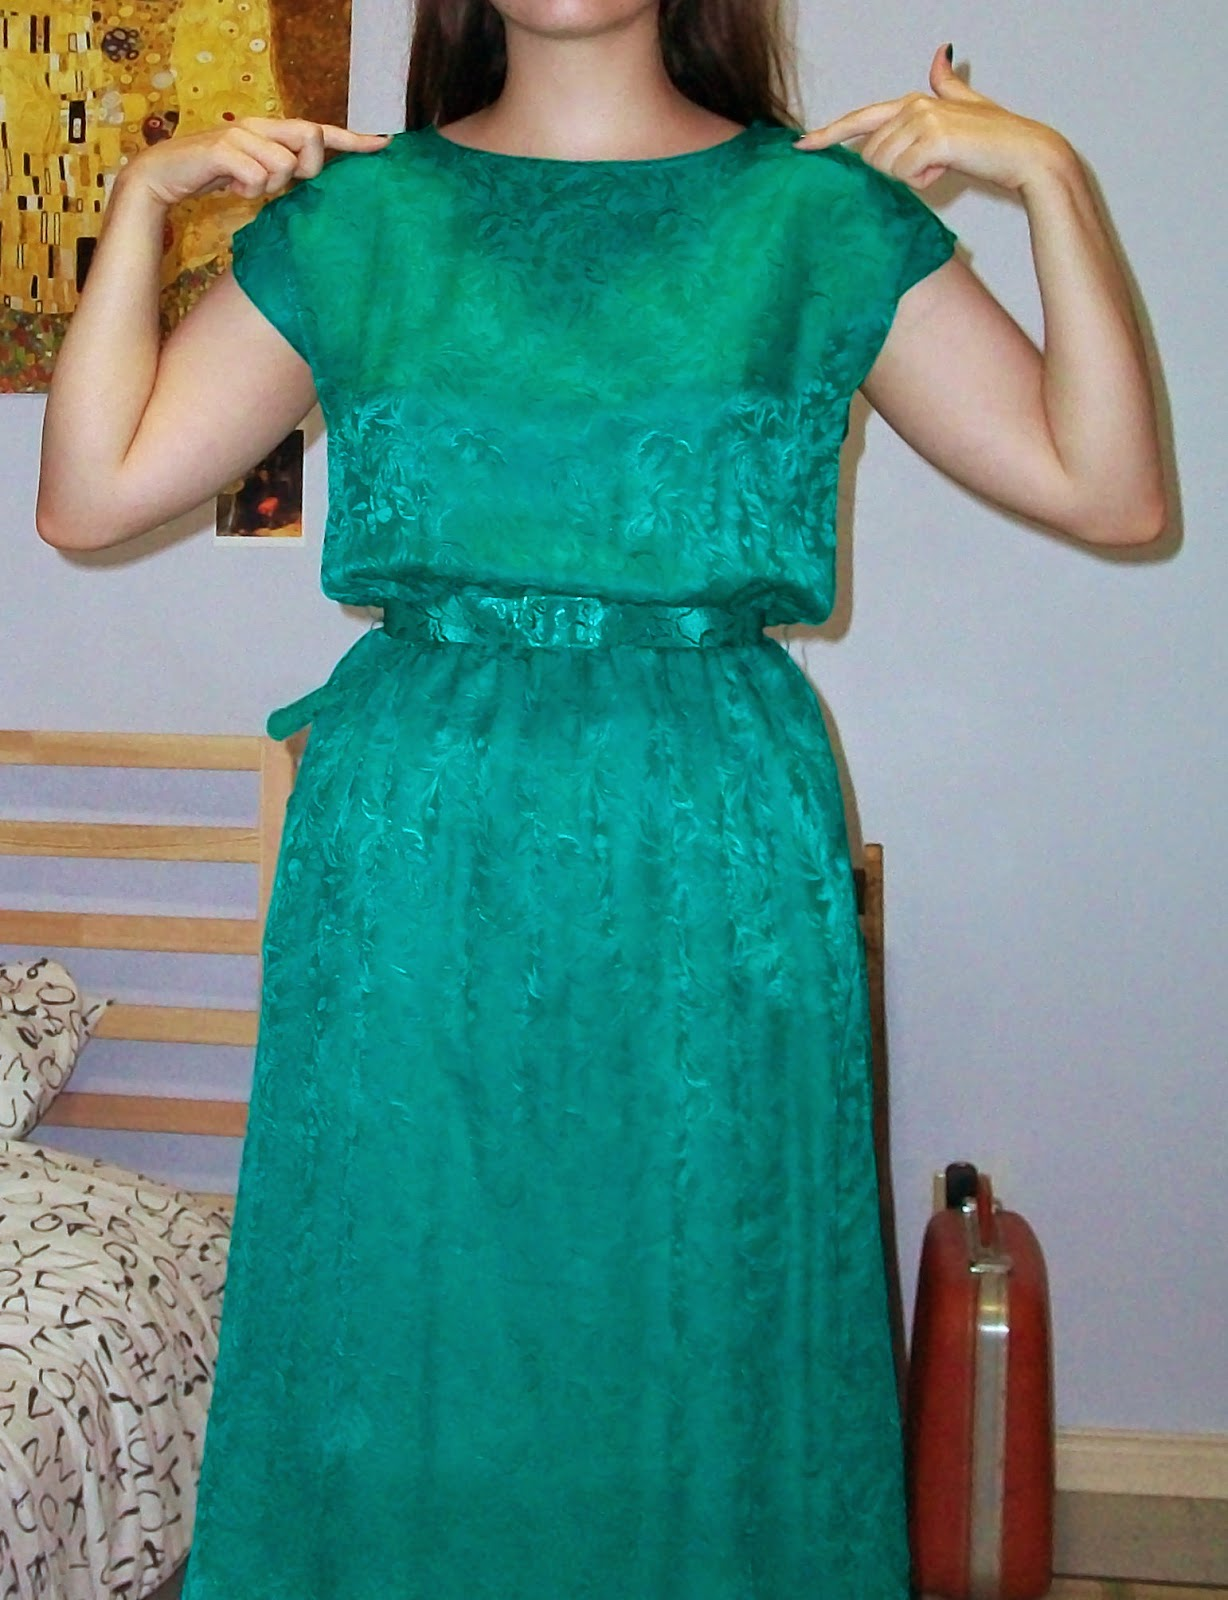 Photo of woman in green dress pointing at her shoulders.